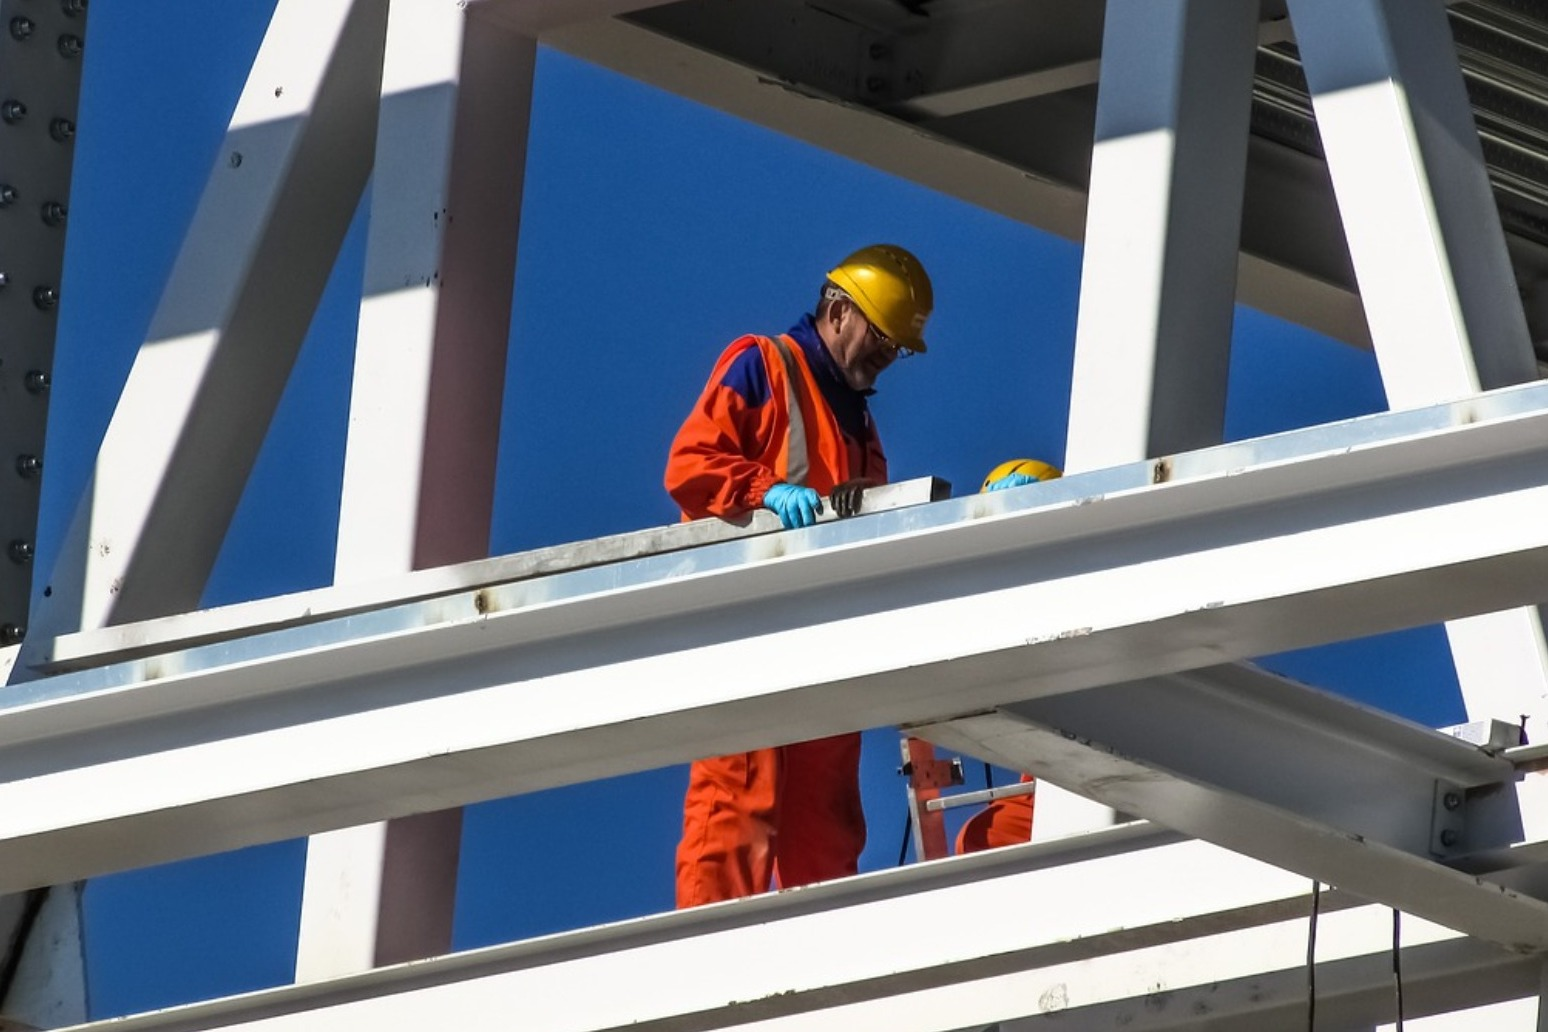 Carillion public sector employees urged to keep going to work